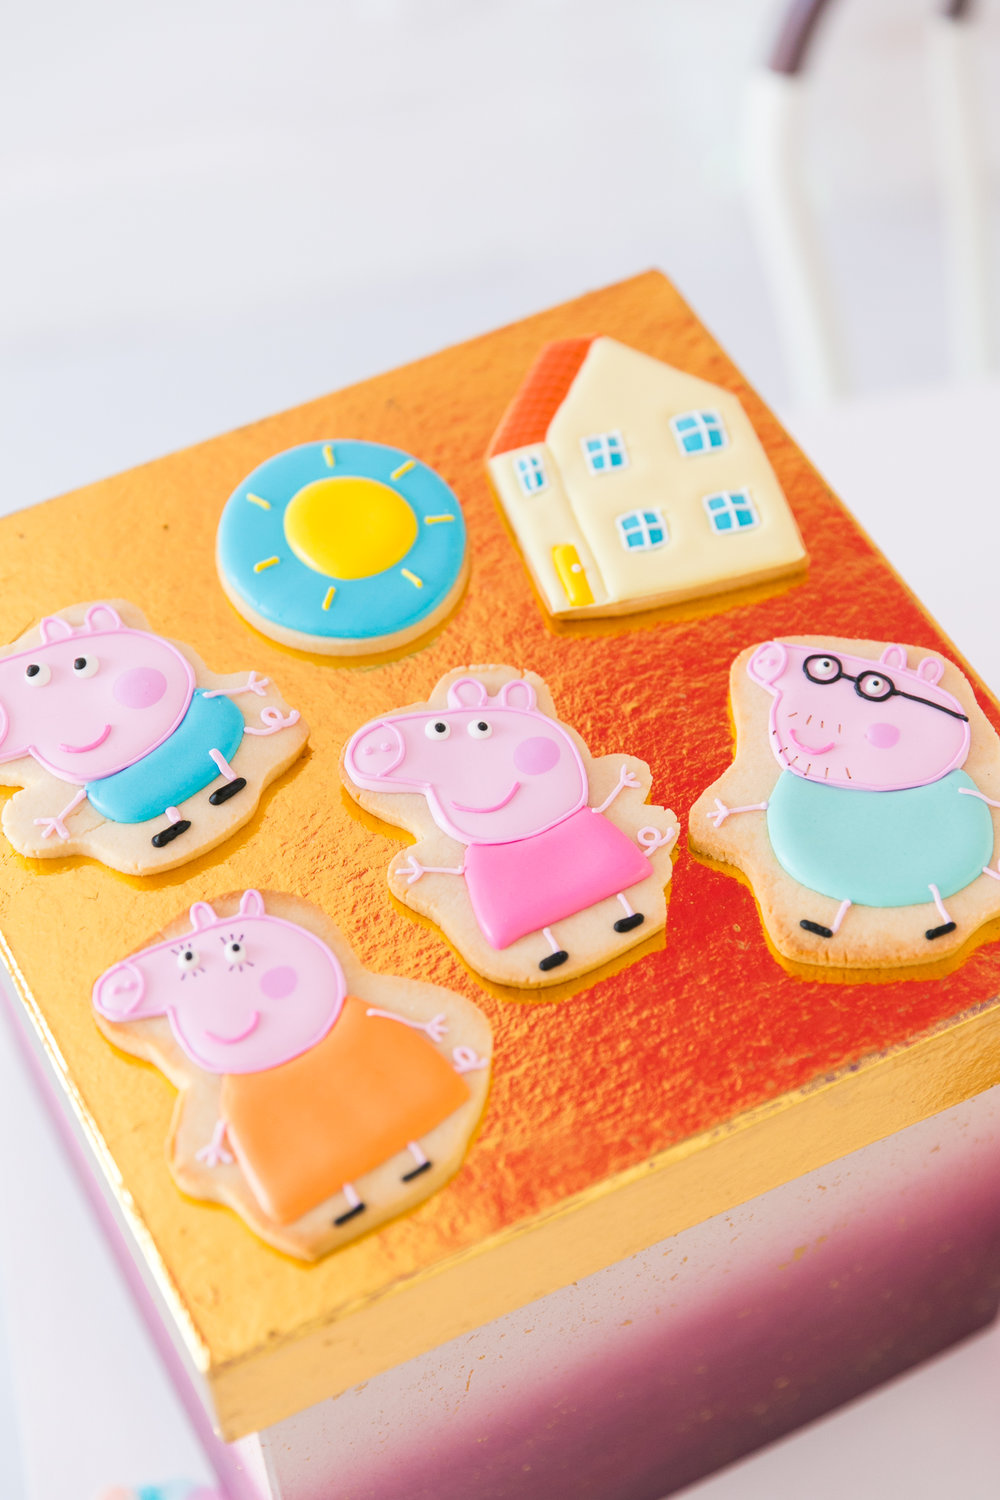 Oui Party - Peppa Pig Party - Peppa Pig Cookies.jpg